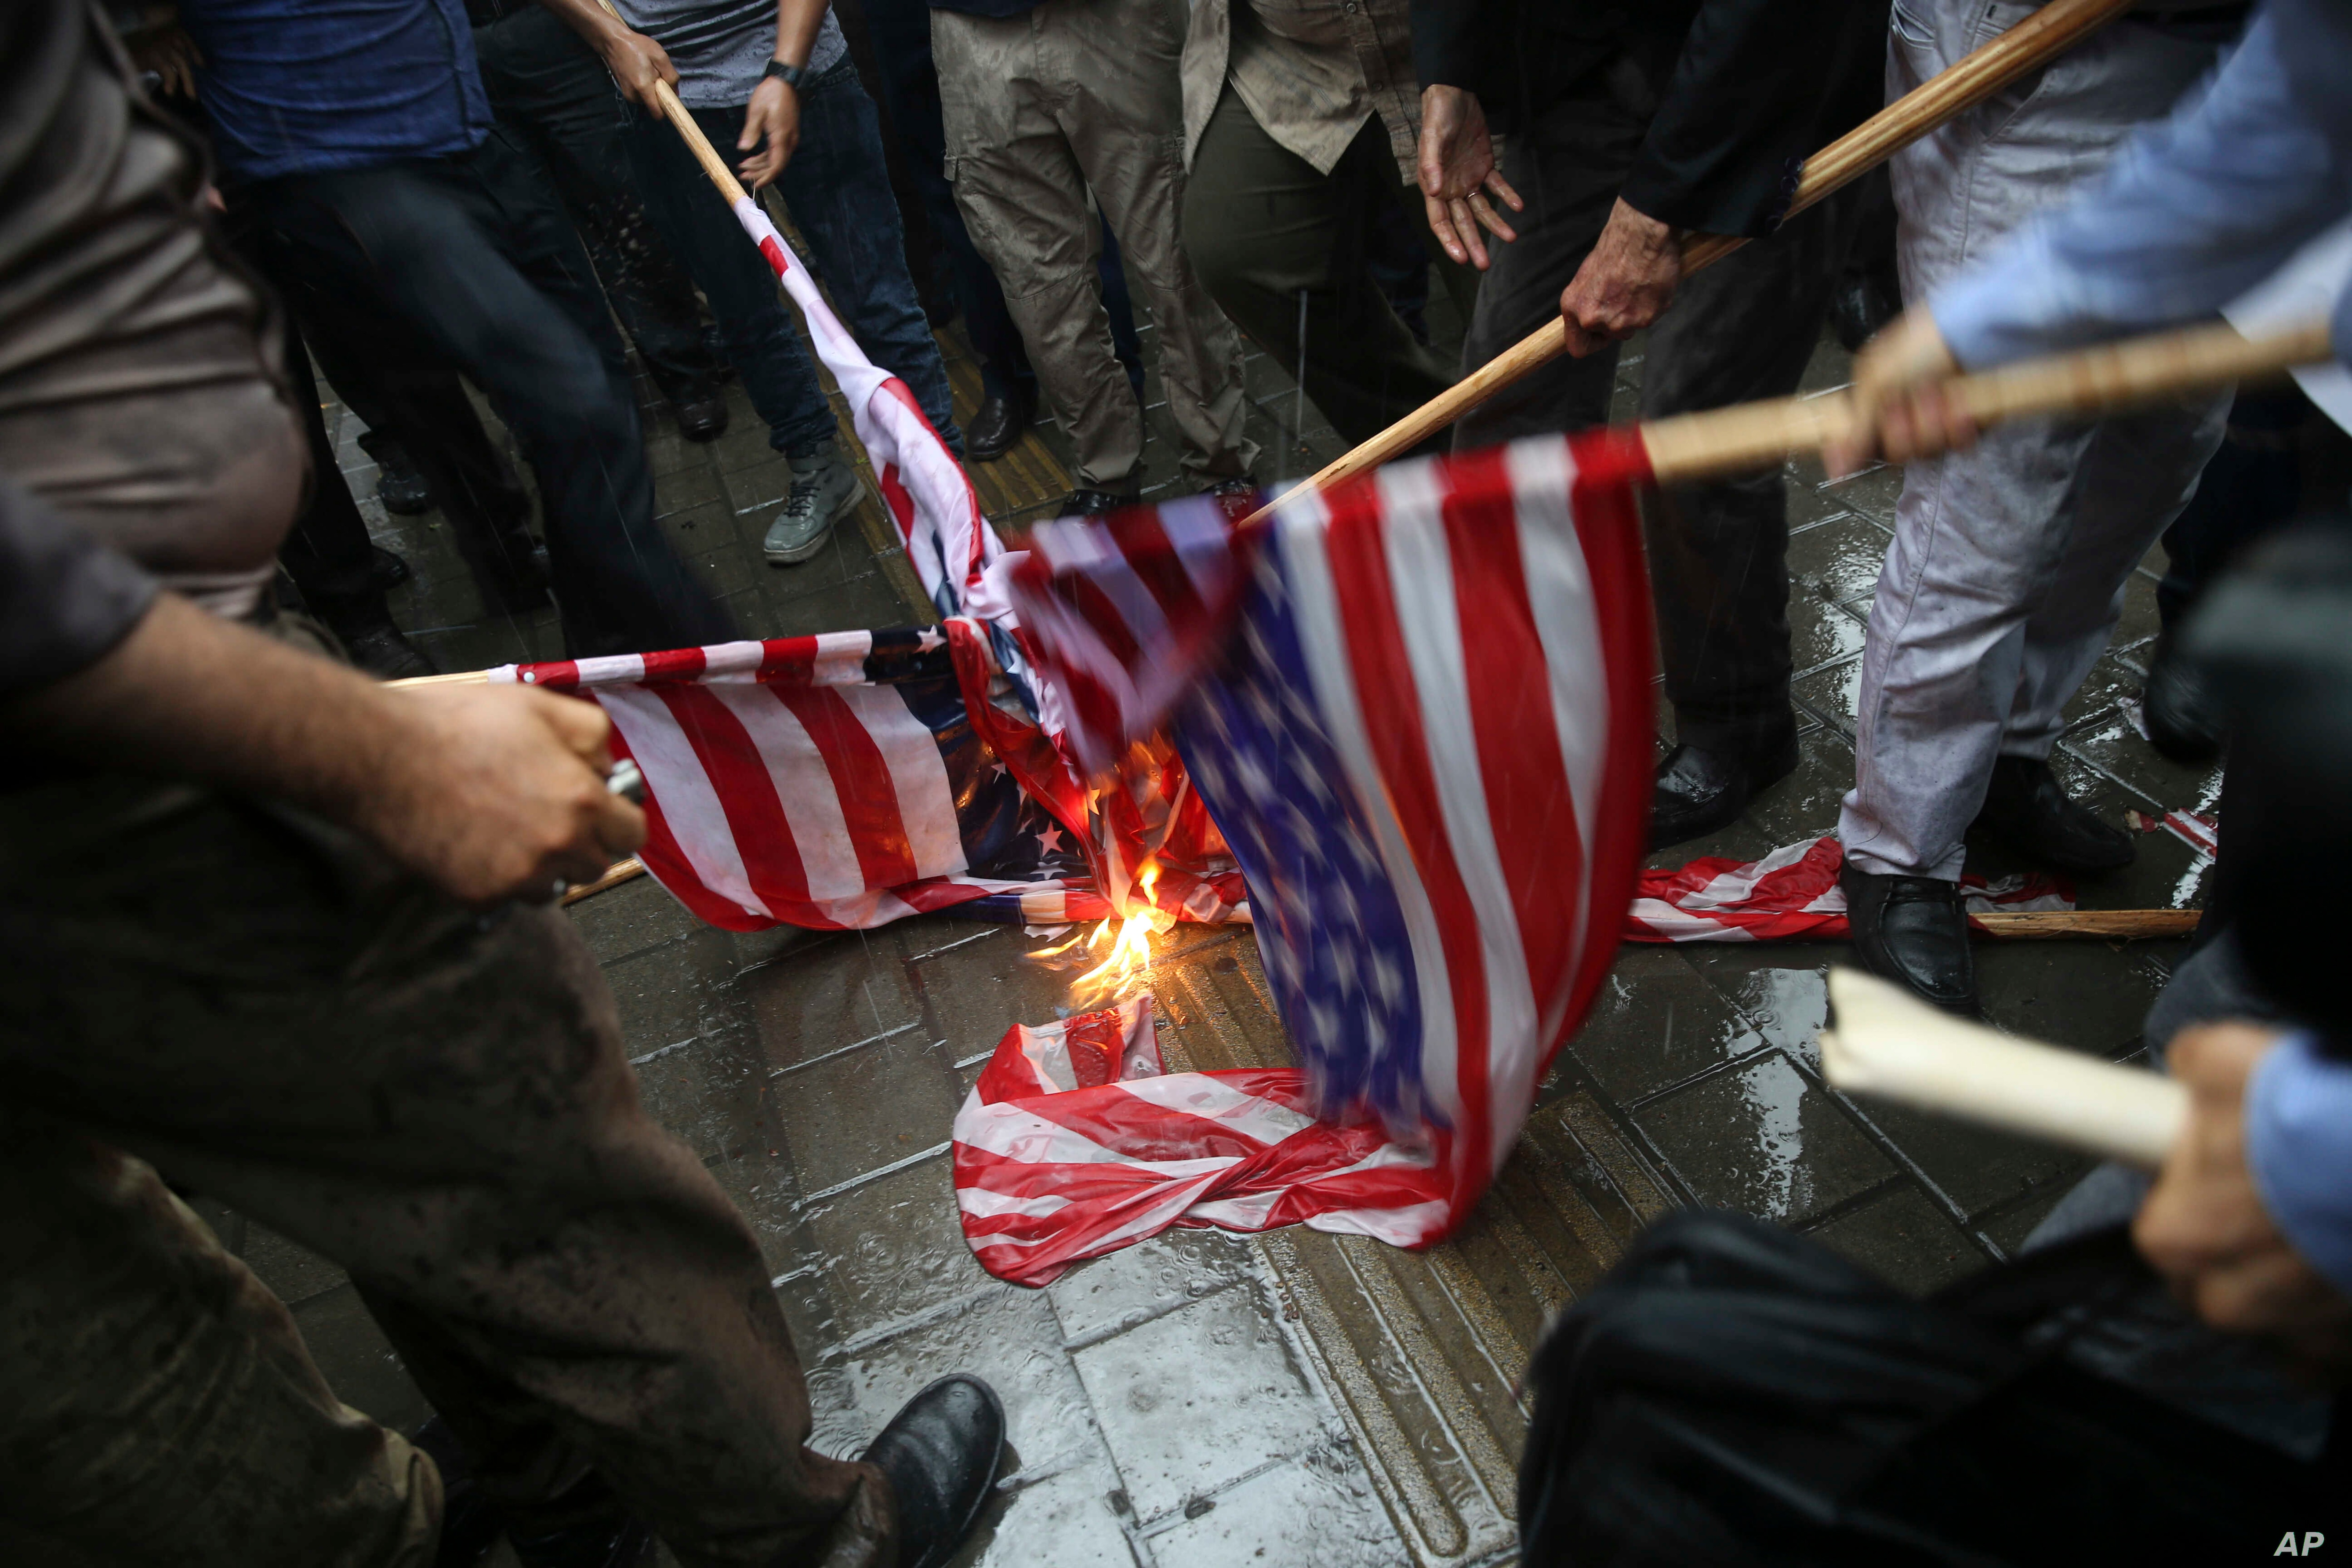 Iranian demonstrators burn representations of the U.S. flag during a protest in front of the former U.S. Embassy in response to President Donald Trump's decision to pull out of the nuclear deal and renew sanctions, in Tehran, Iran, May 9, 2018.